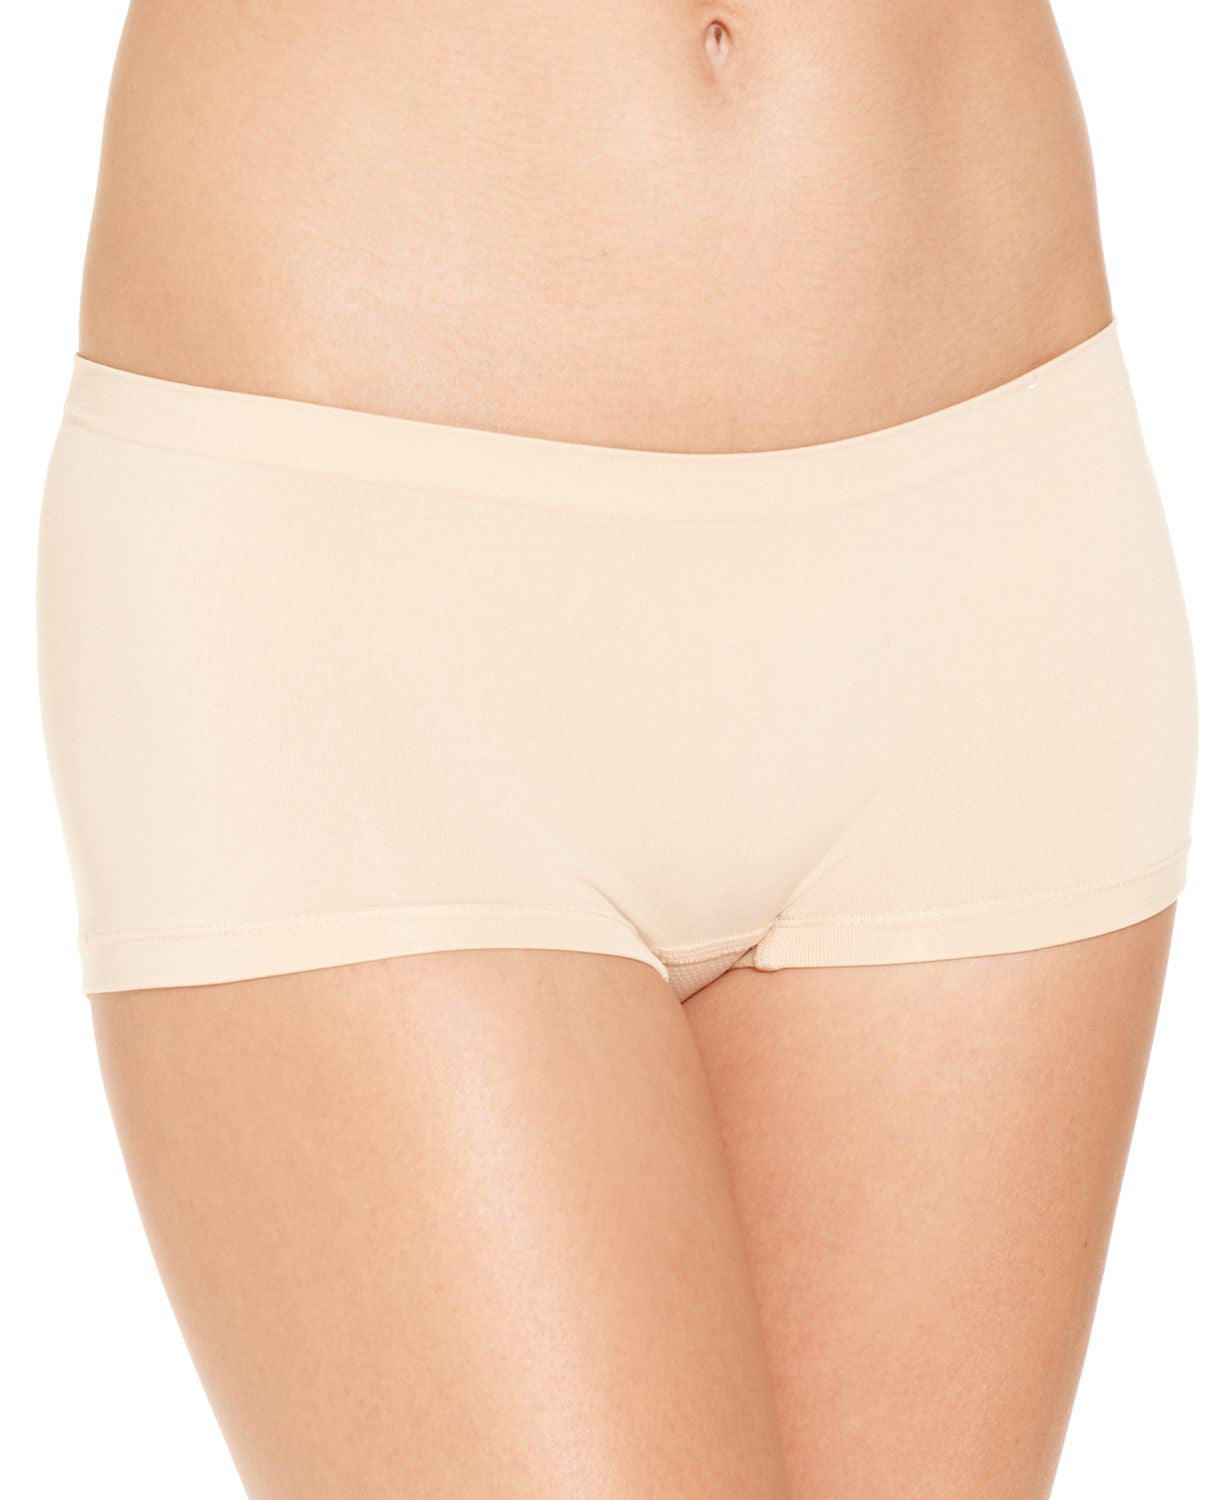 Jenni Seamless Boyshort in Sugar Almond